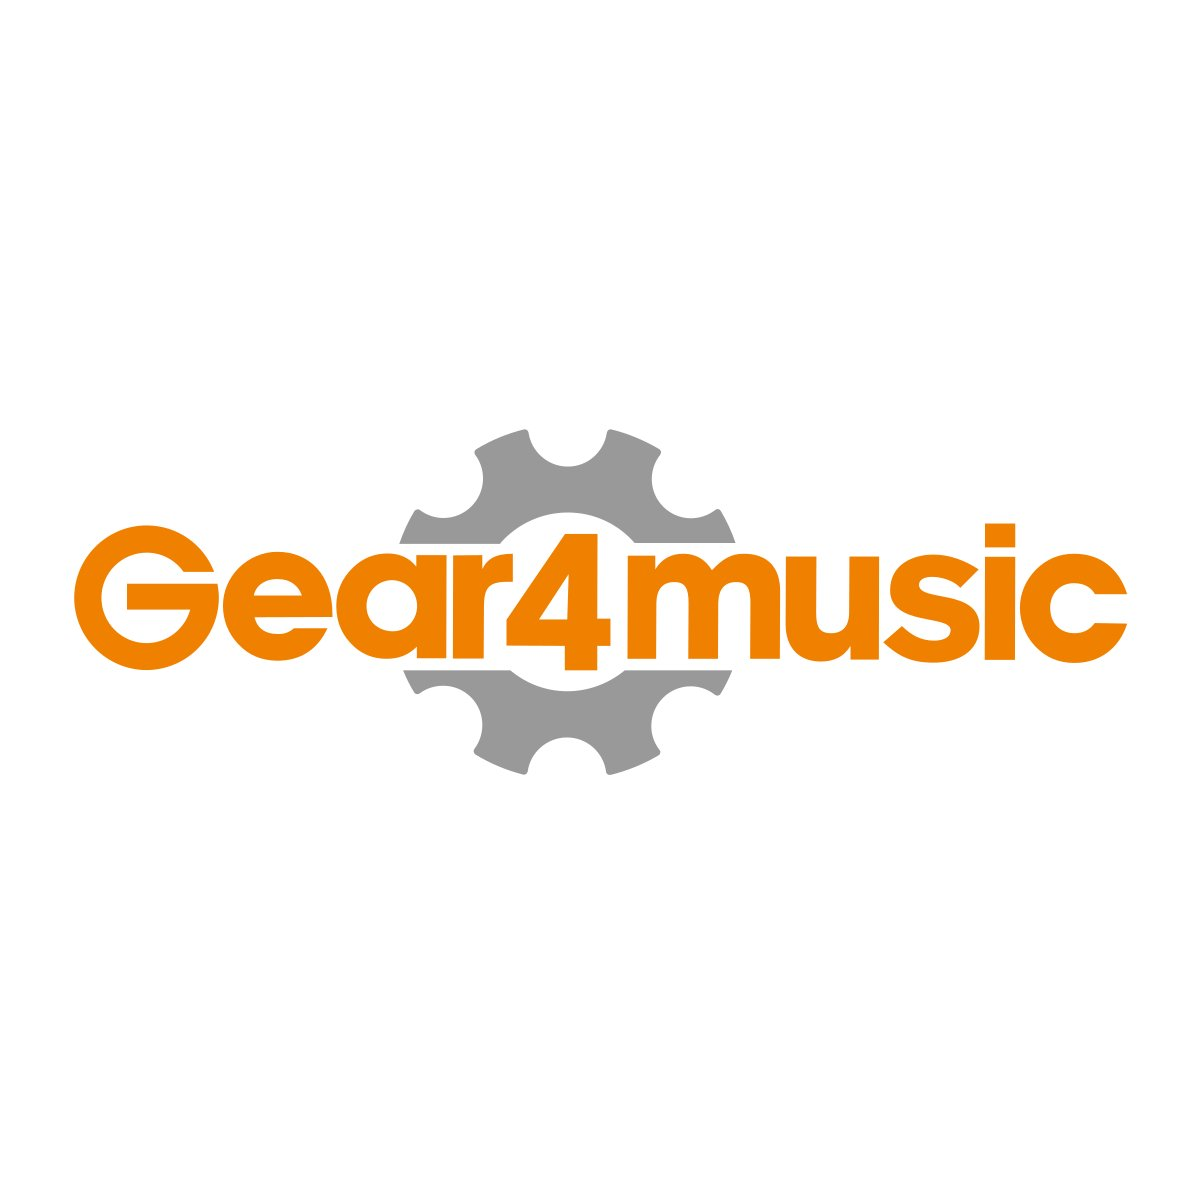 Armónica de Gear4music